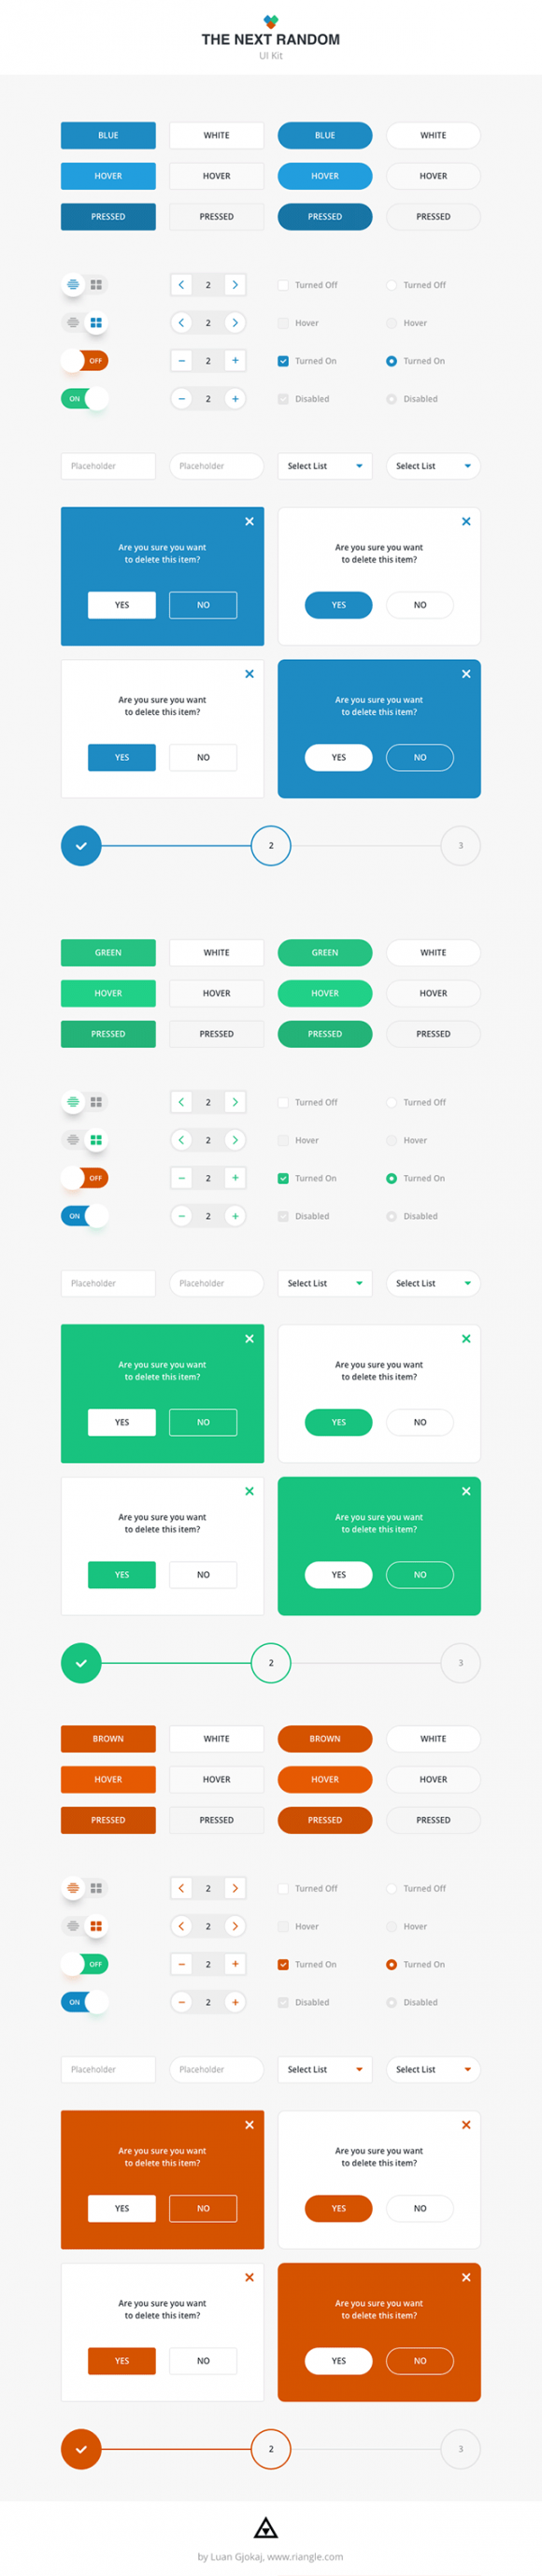 The Next Random UI kit - Preview